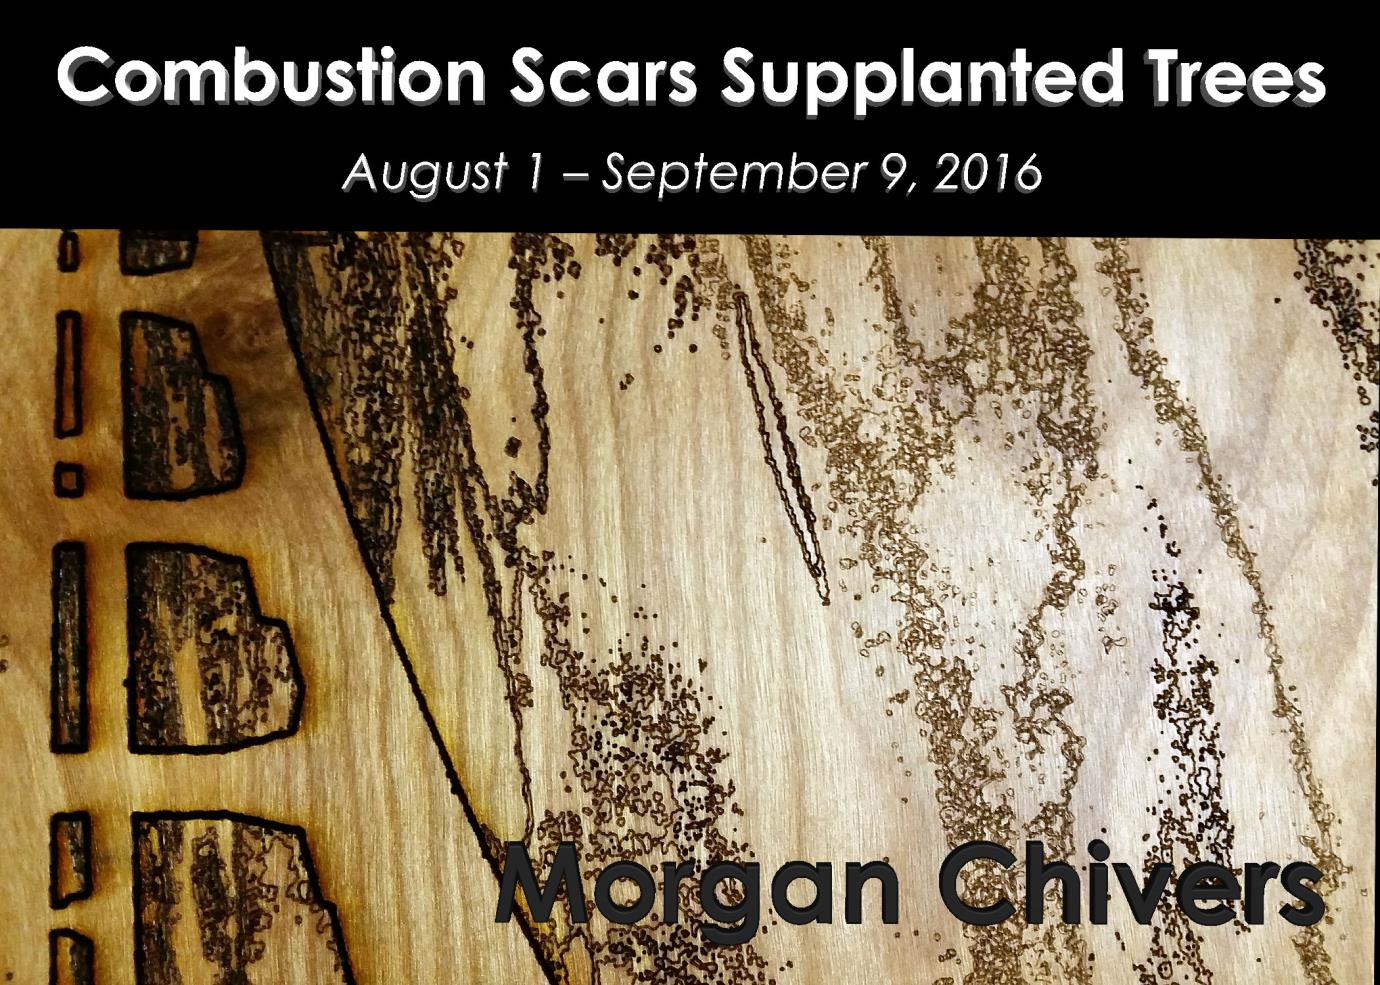 Image of wood burnt abstract images with a black banner at the top featuring the text Combustion Scars Supplanted Trees by Morgan Chivers August 1 - September 9